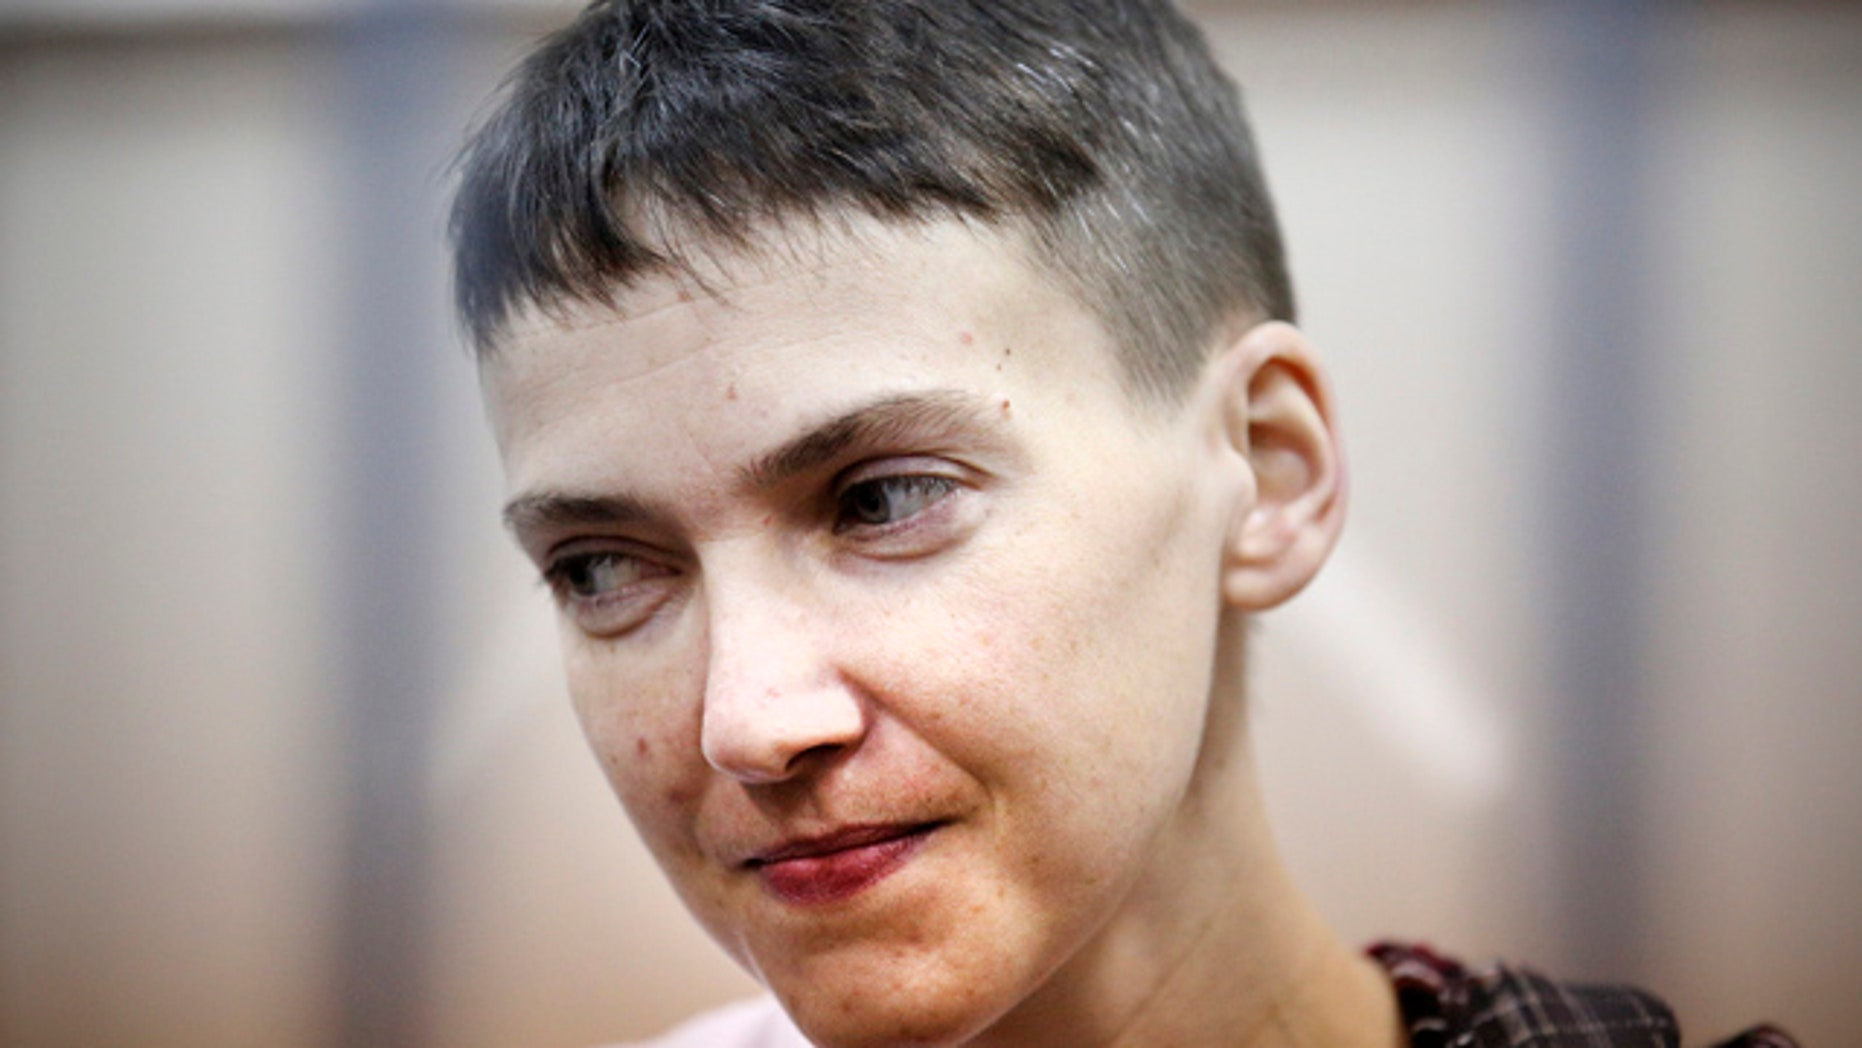 FILE - In this March 26, 2015, file photo, Ukrainian jailed military officer Nadezhda Savchenko attends a court hearing in Moscow. (AP Photo/Maxim Chernavsky, File)